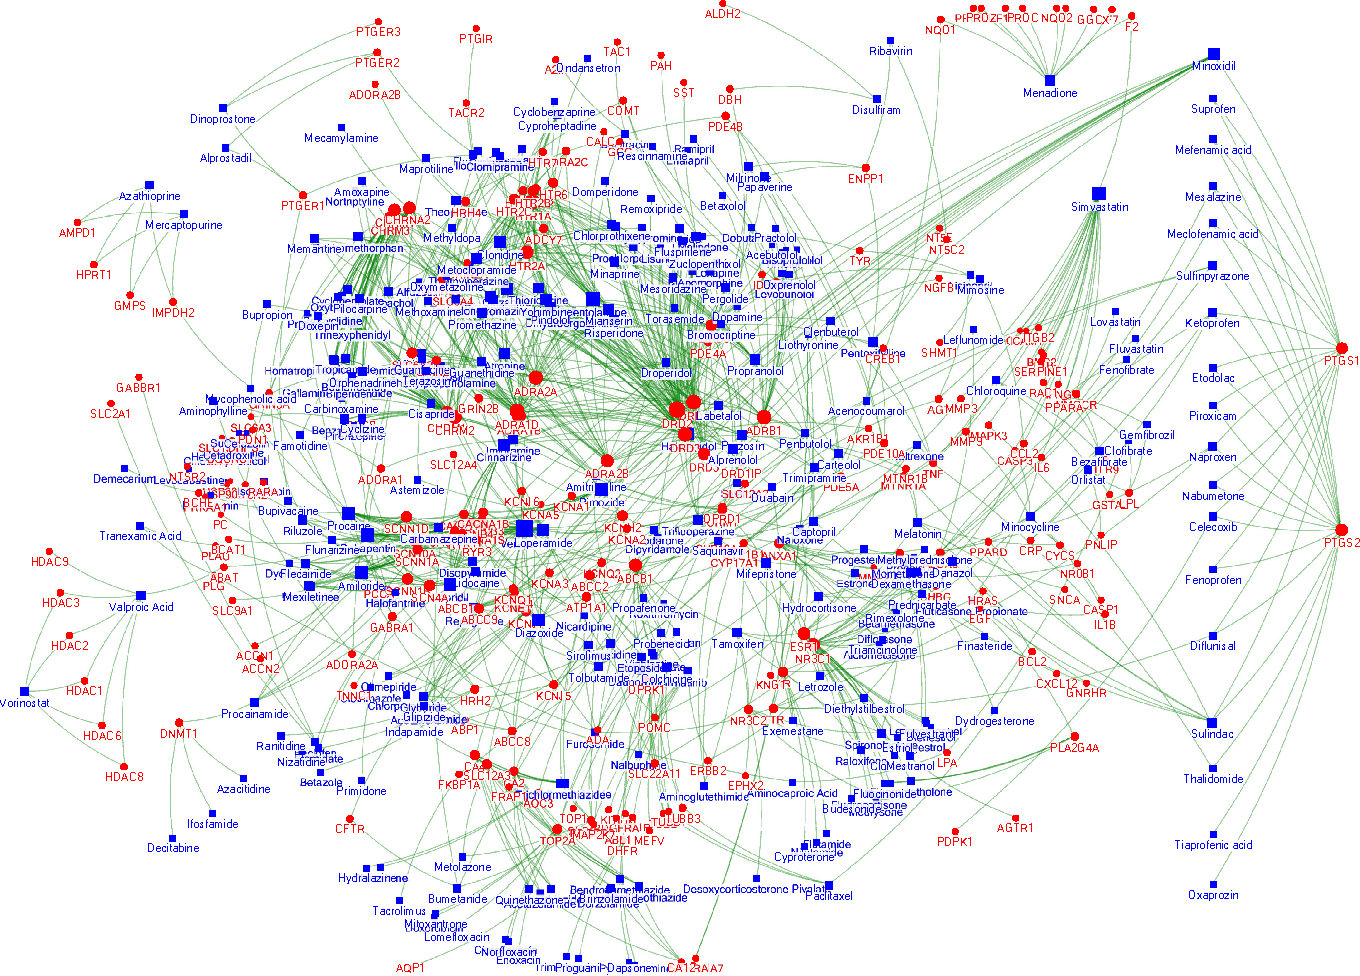 Fig. 7: Network of drug-target interactions in the dataset. Drugs are shown with blue squares and targets with red circles, where size of the node represent their degree. Similarities are not shown to simplify the graph.